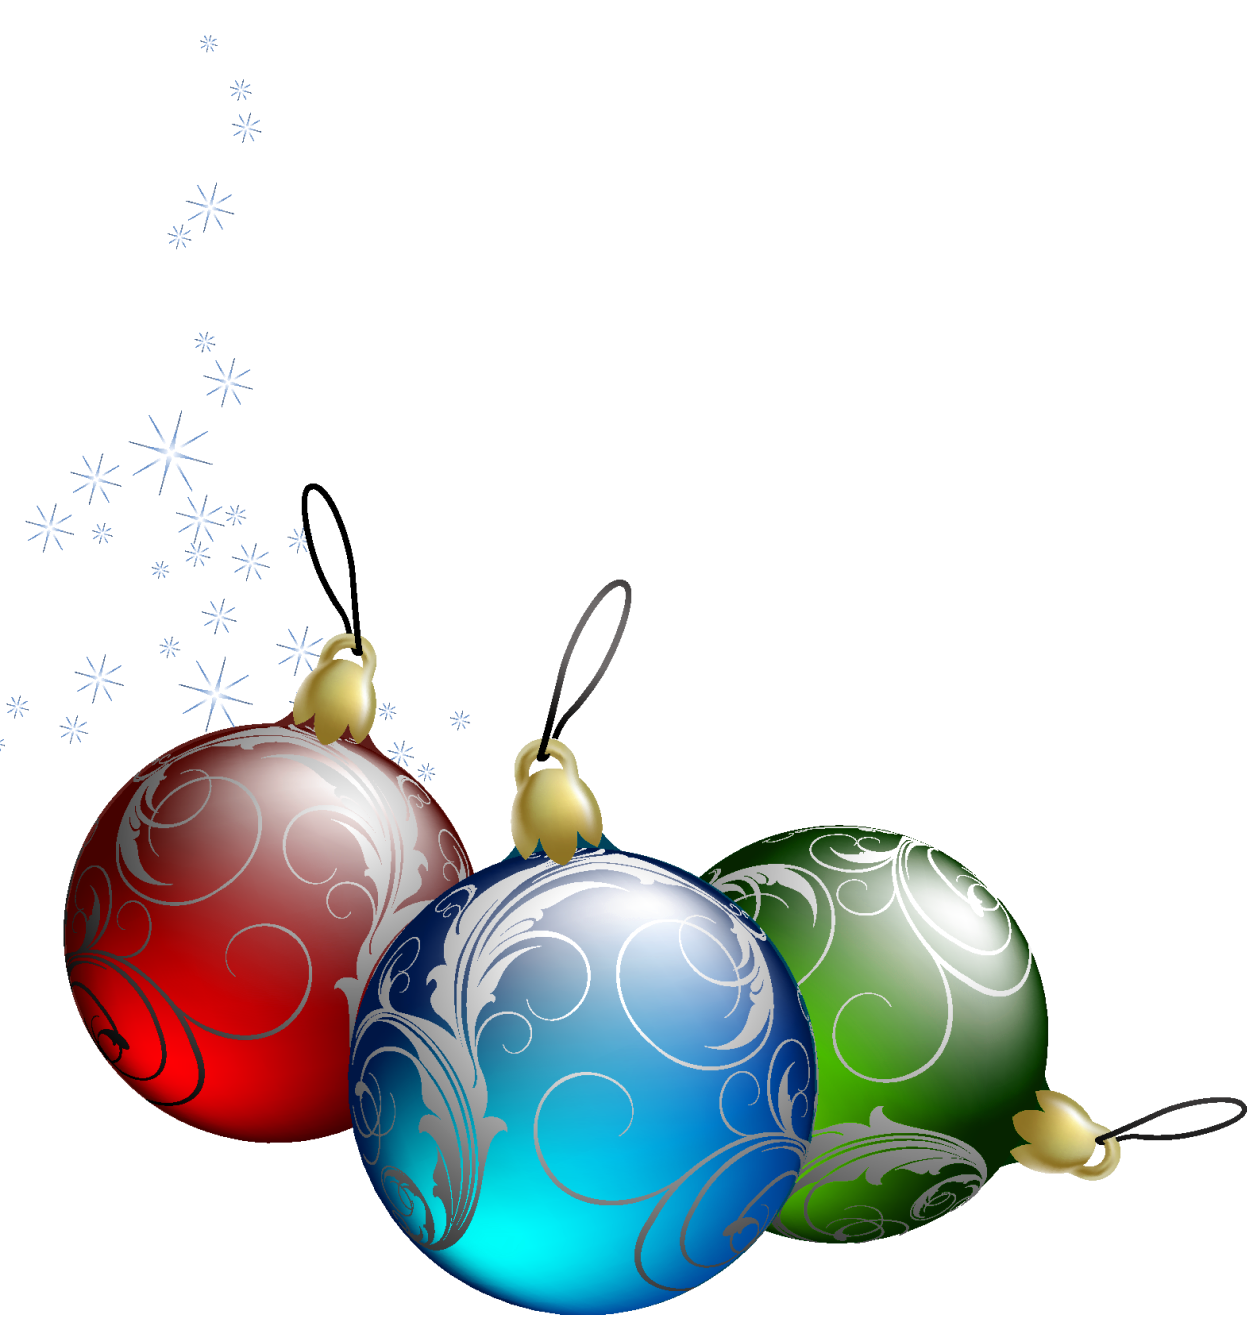 Free Christmas Ornaments Transparent Background, Download.